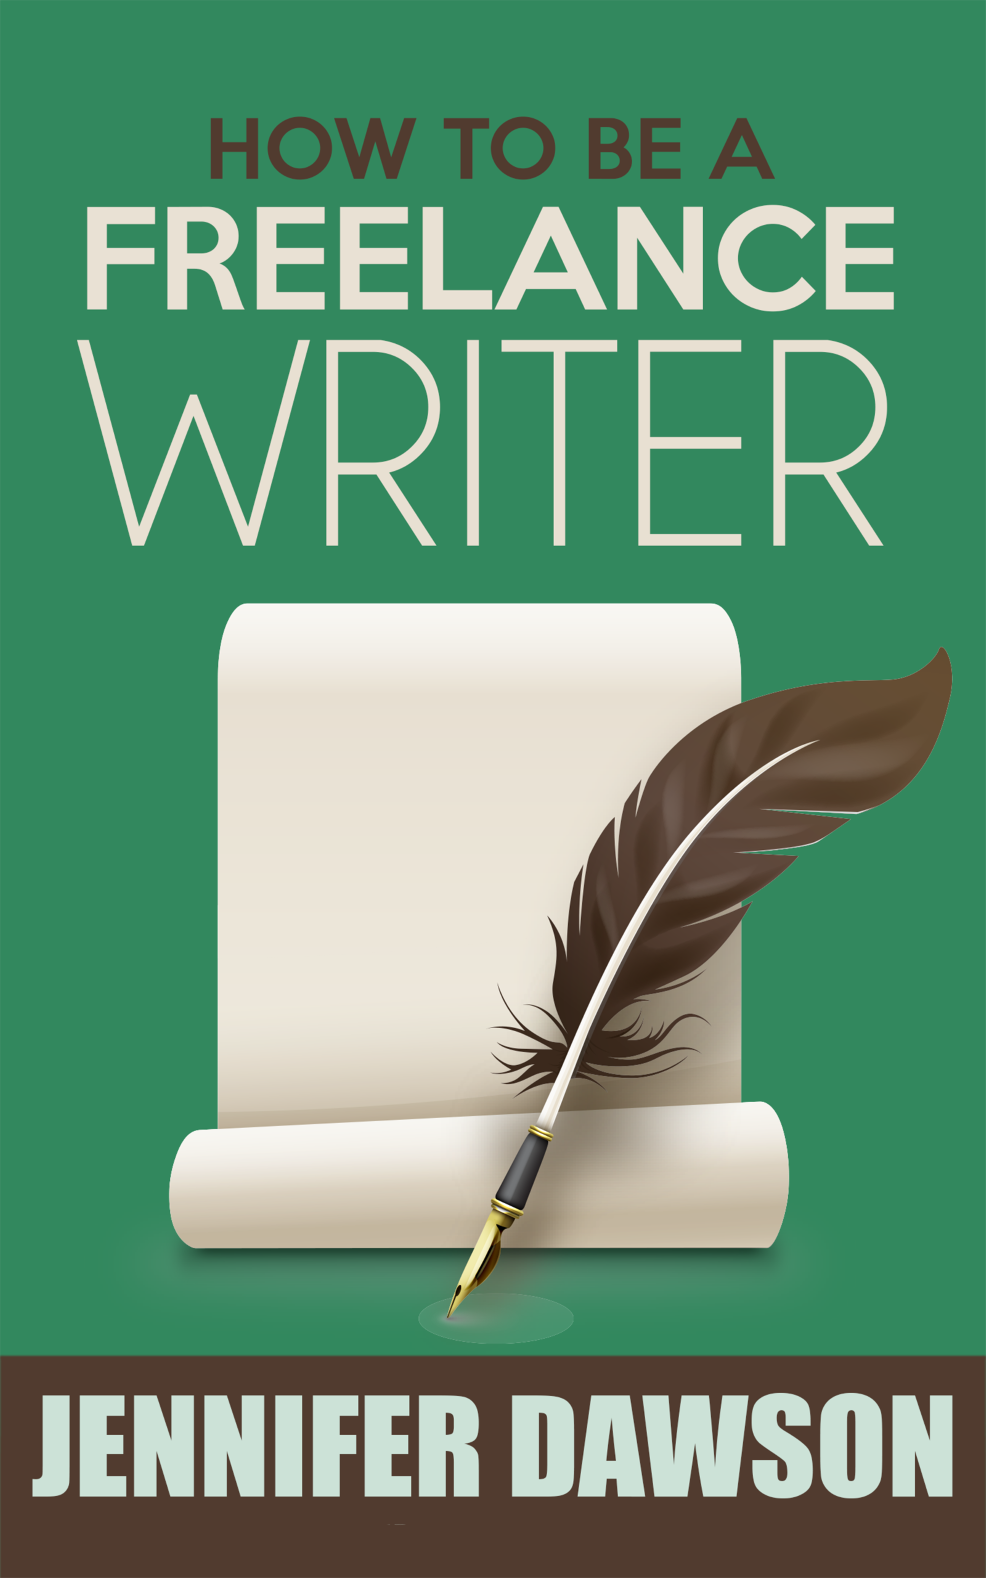 How To Be A Freelance Writer